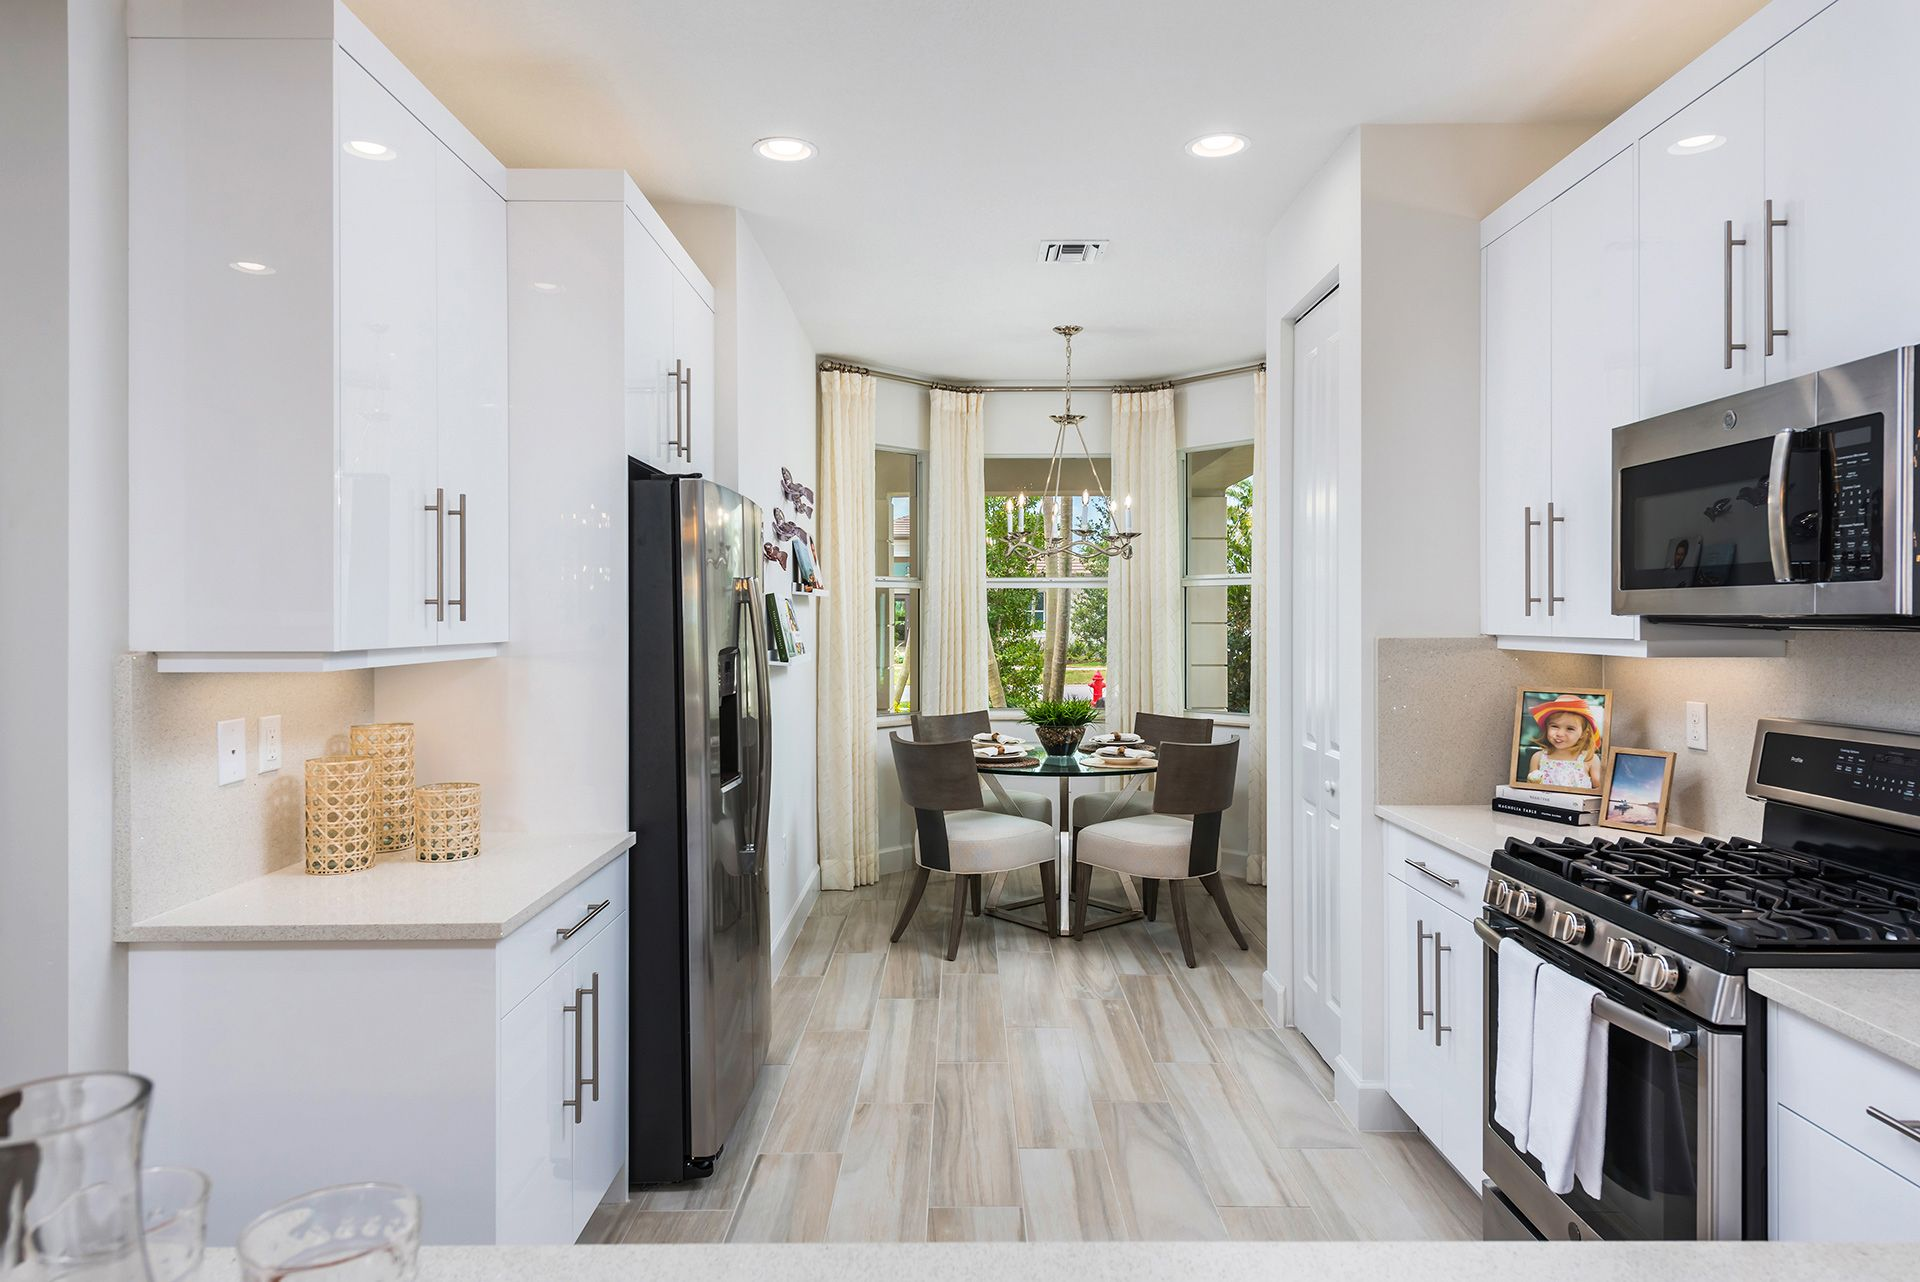 Kitchen featured in the Lucia By GL Homes in Martin-St. Lucie-Okeechobee Counties, FL